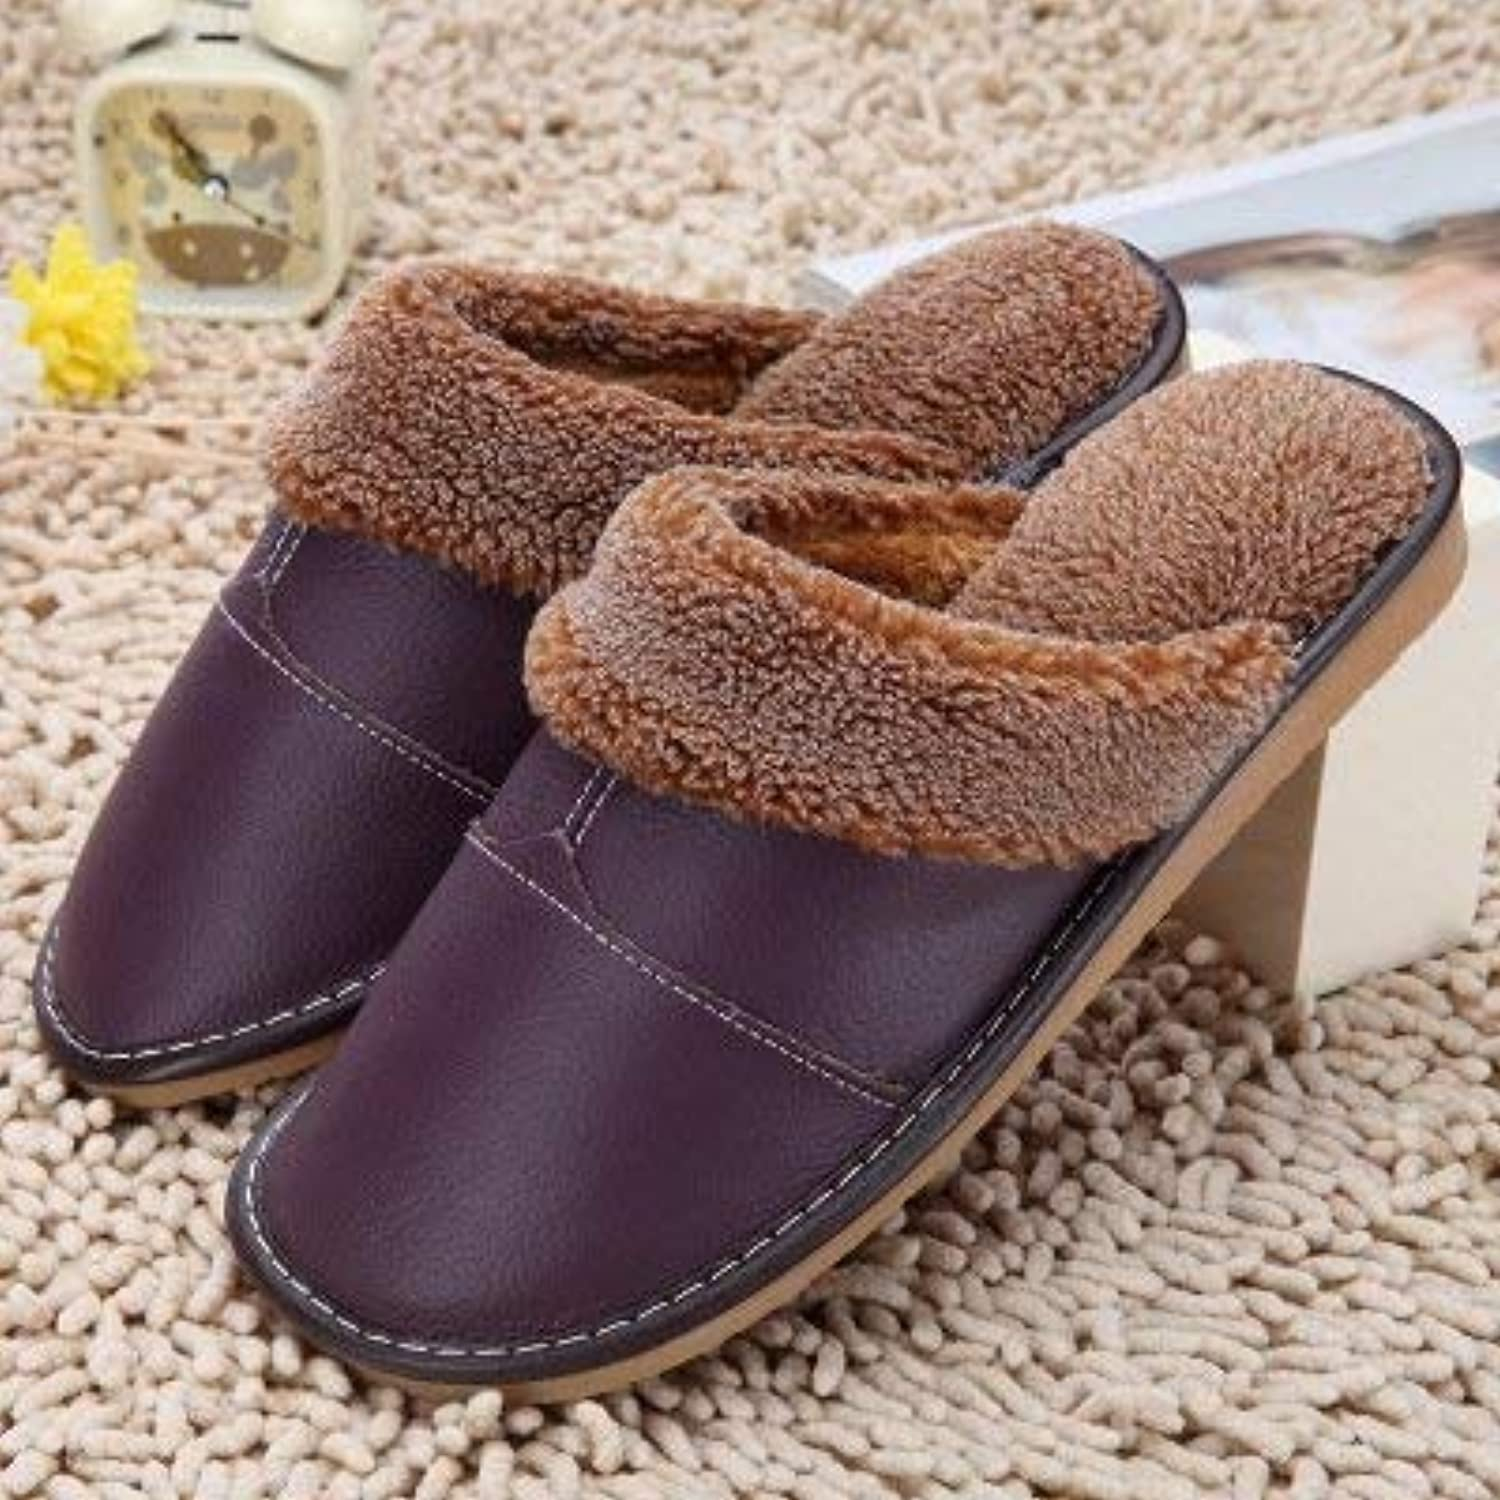 GouuoHi Womens Slippers Ladies Casual Faux-Leather Slippers in Autumn and Winter The Indoor Warm Cotton Slippers orange pink Red Brown for Women